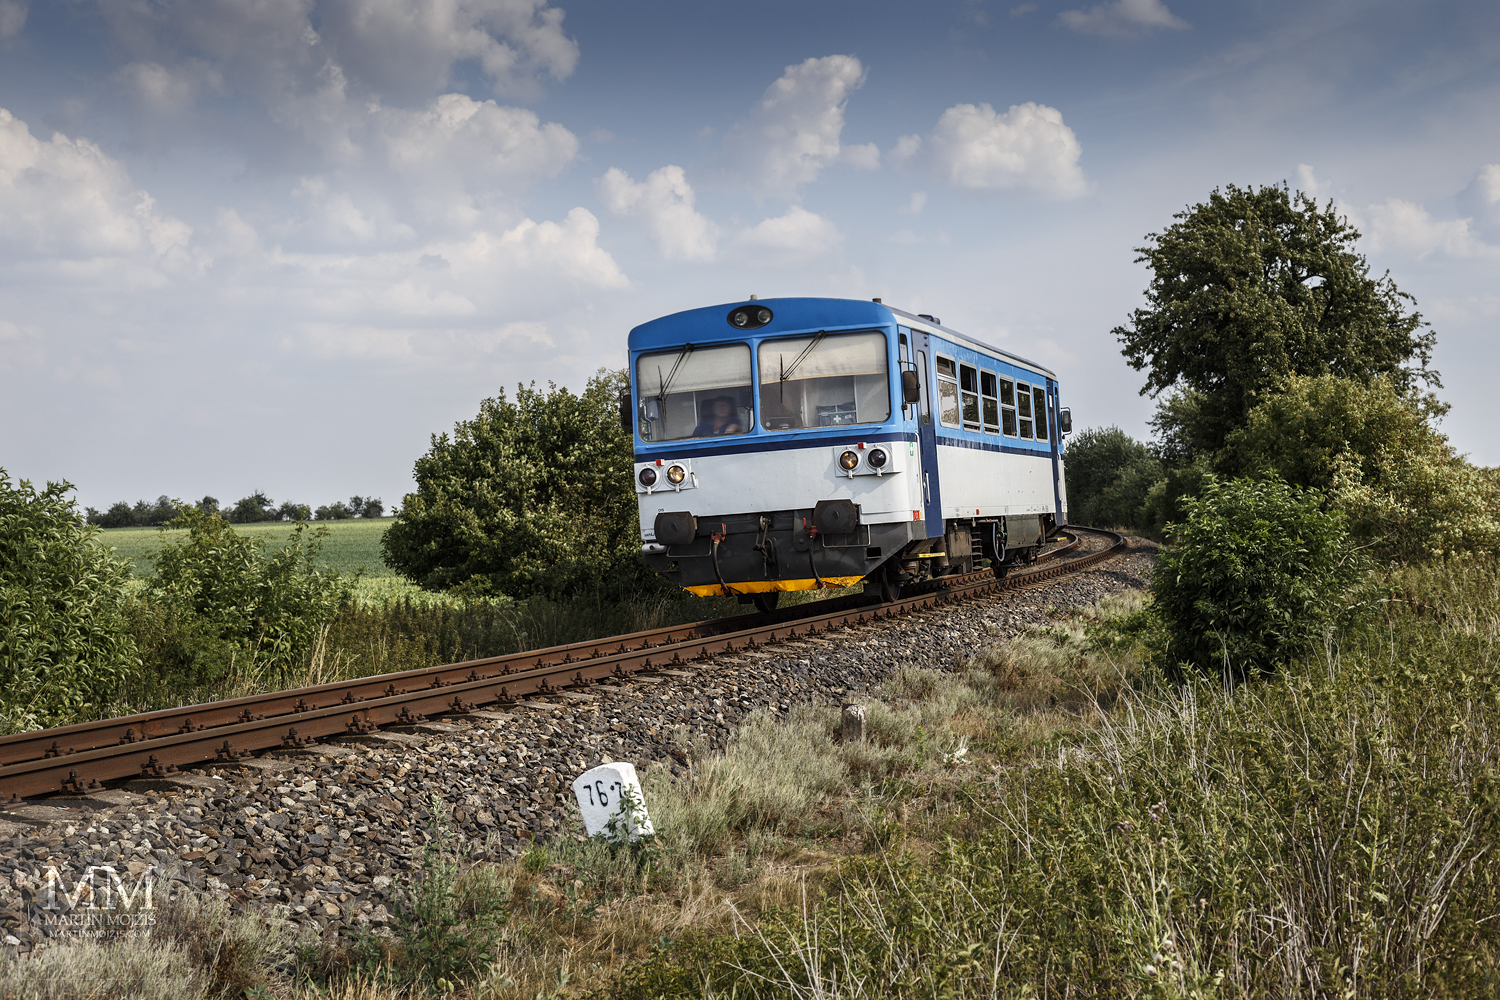 Large format, fine art photograph of small blue and white train. Martin Mojzis.